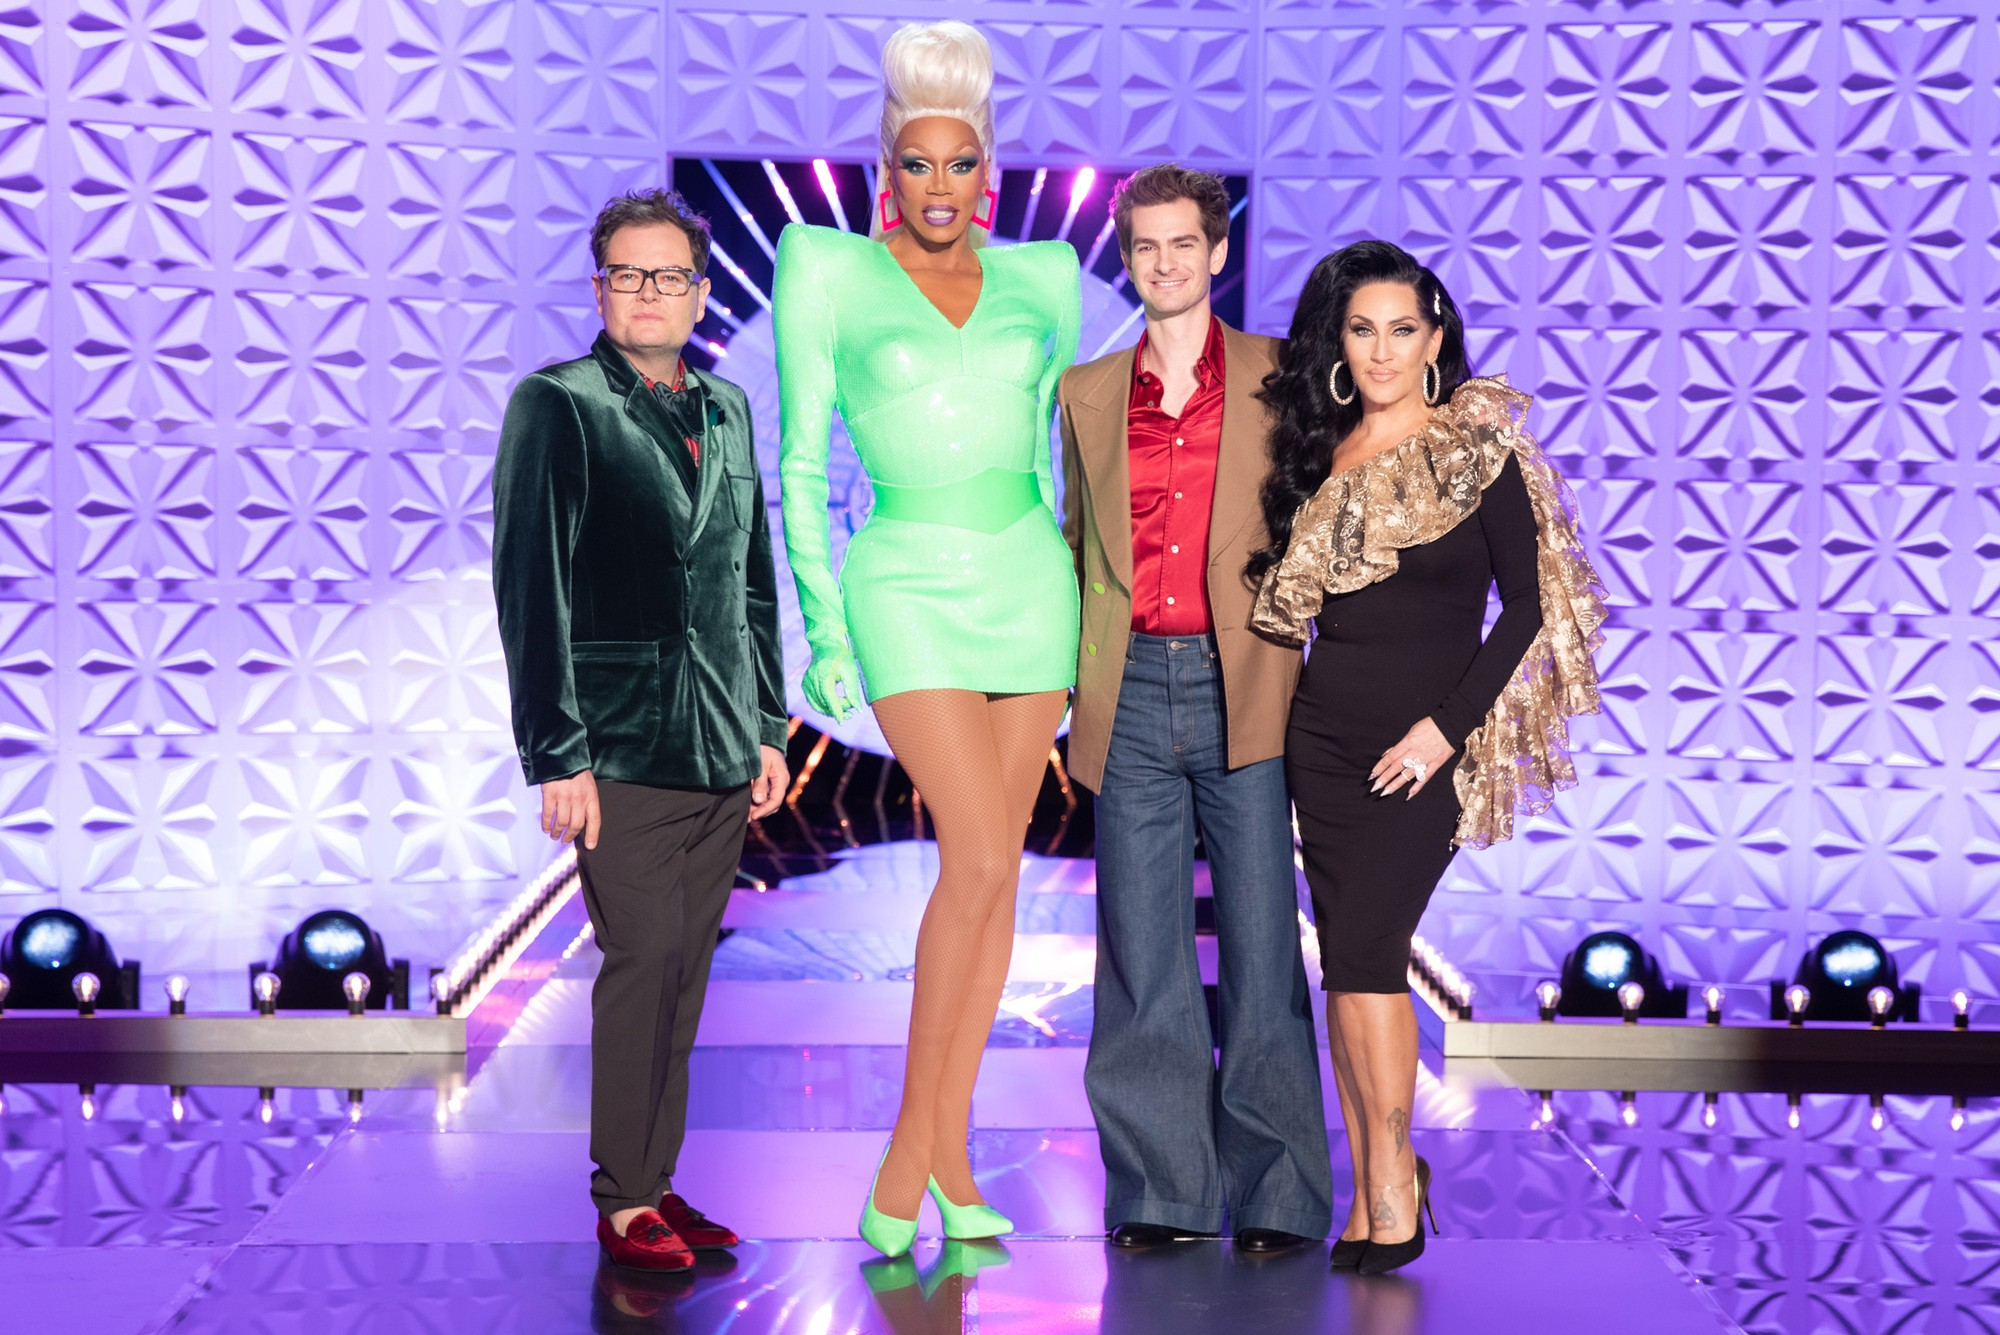 The judging panel of RuPaul's Drag Race UK episode one L-R: Alan Carr, RuPaul Charles, Andrew Garfield and Michelle Visage